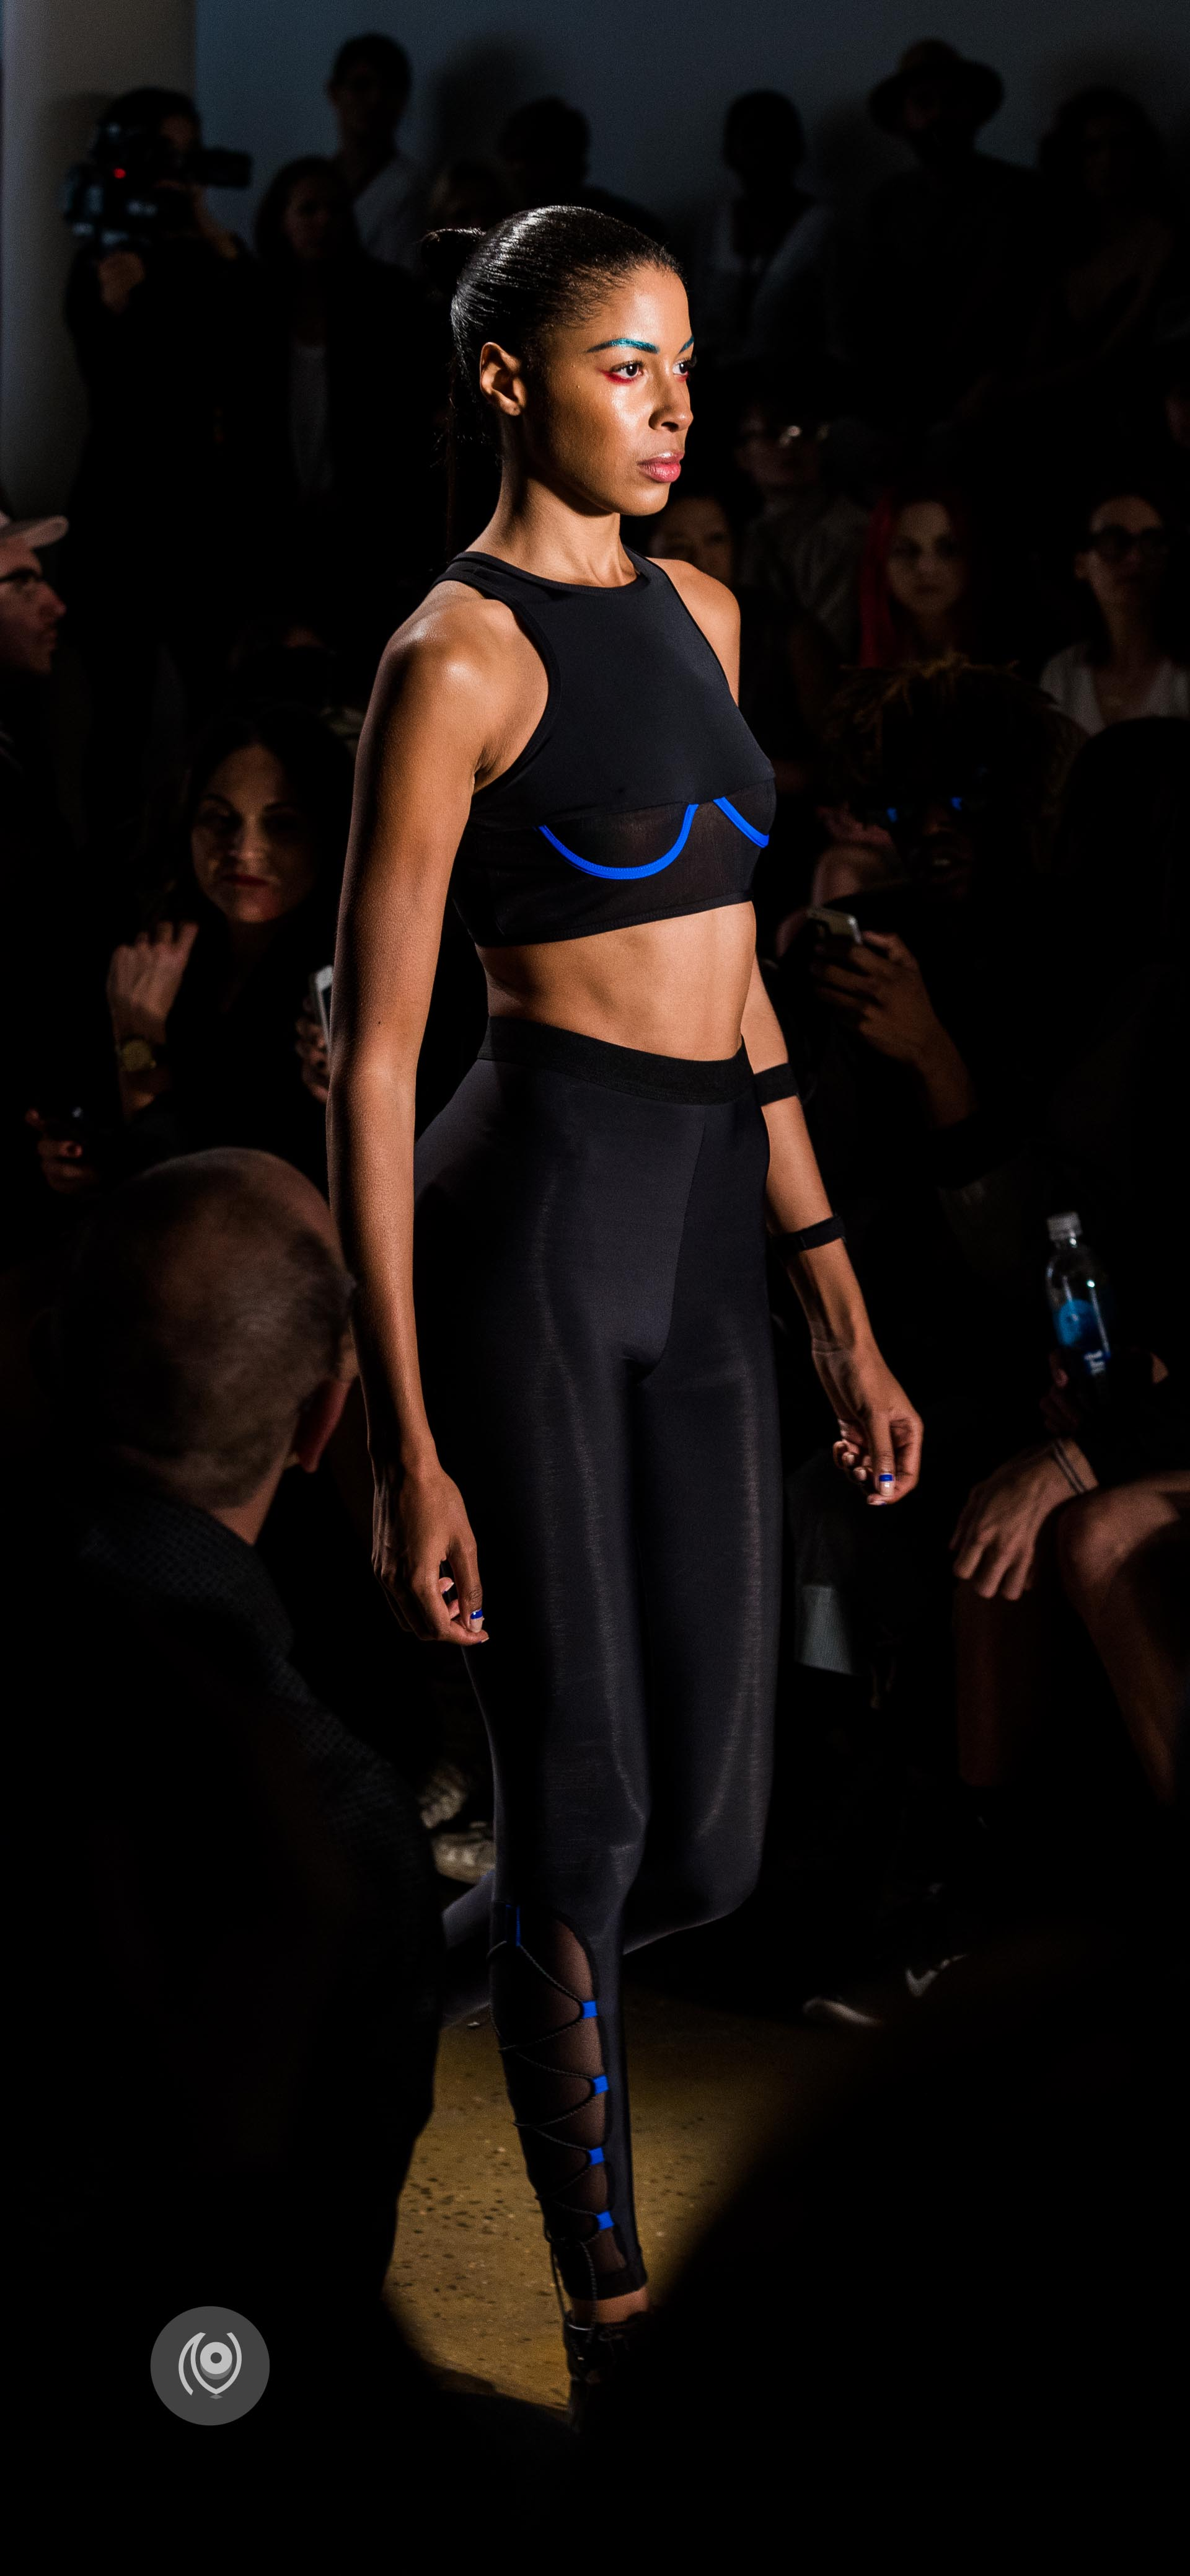 CHROMAT, SS16, Made Fashion Week, NYFW, New York Fashion Week, #EyesForNewYork #REDHUxNYC Naina.co Luxury & Lifestyle, Photographer Storyteller, Blogger